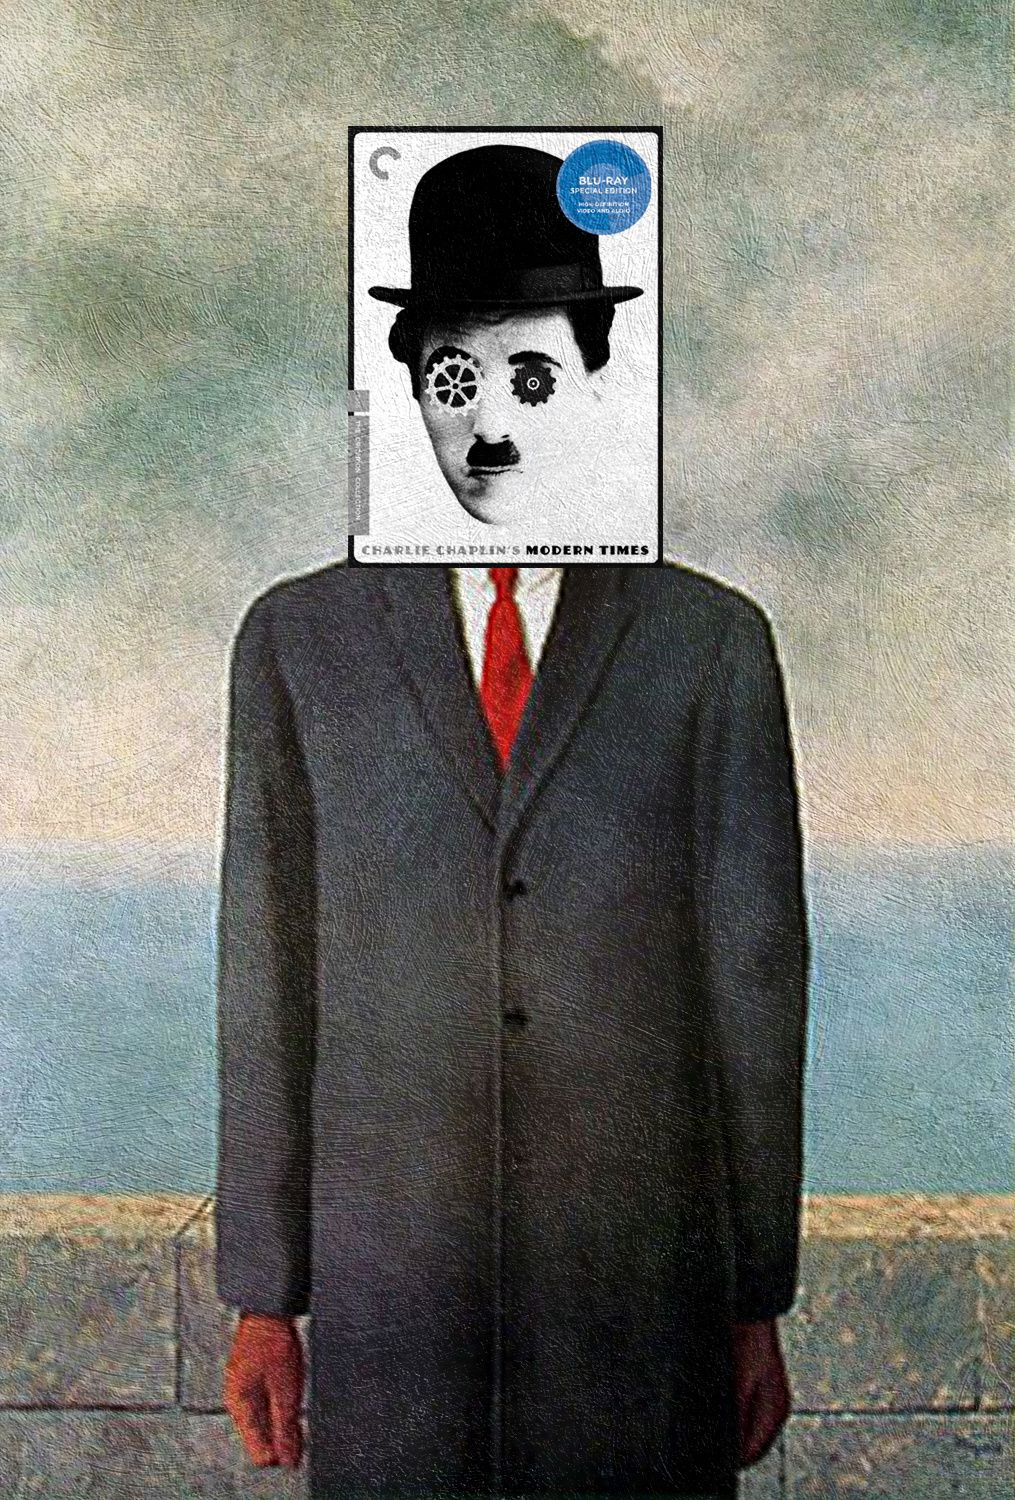 HOMMAGES A RENE MAGRITTE